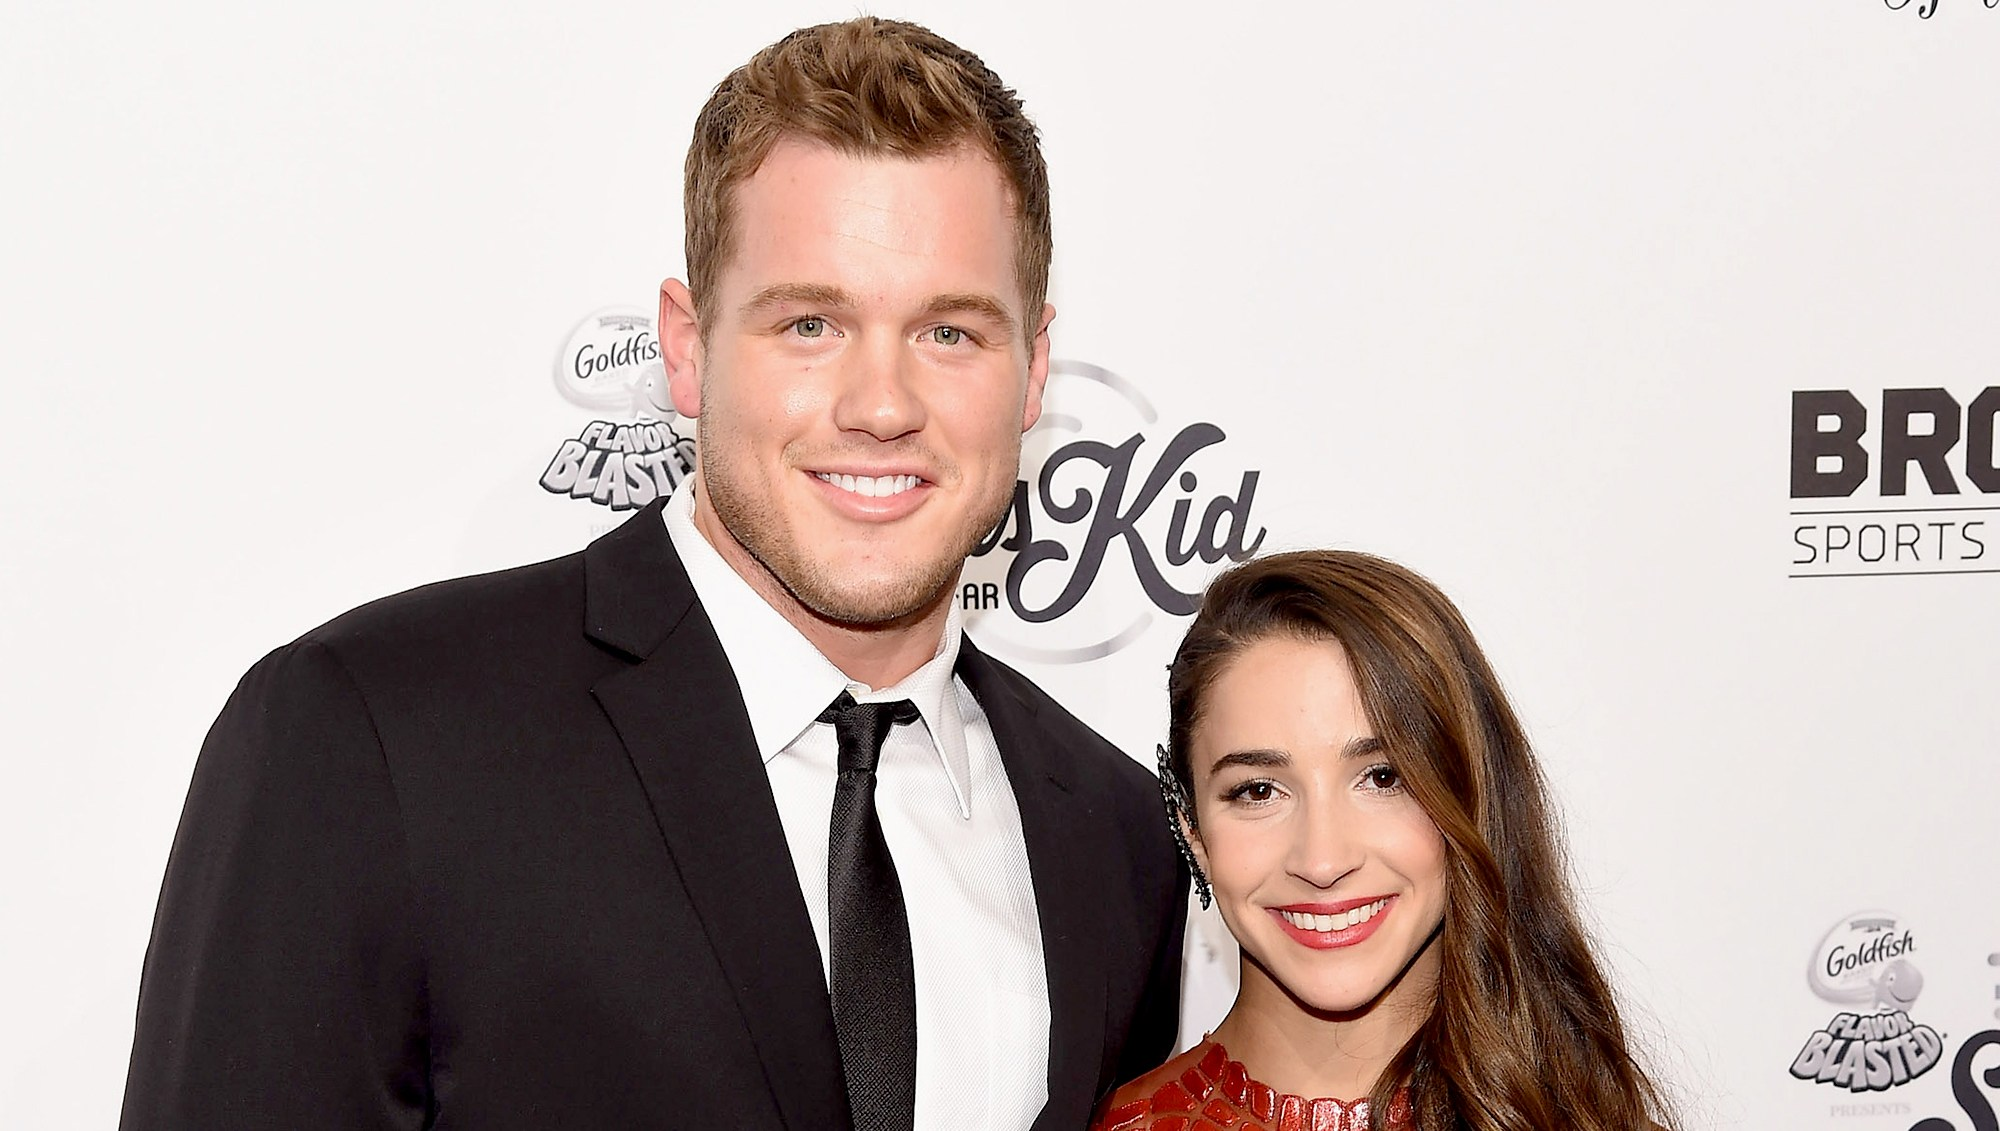 Colton-Underwood-talks-ex-Aly-Raisman